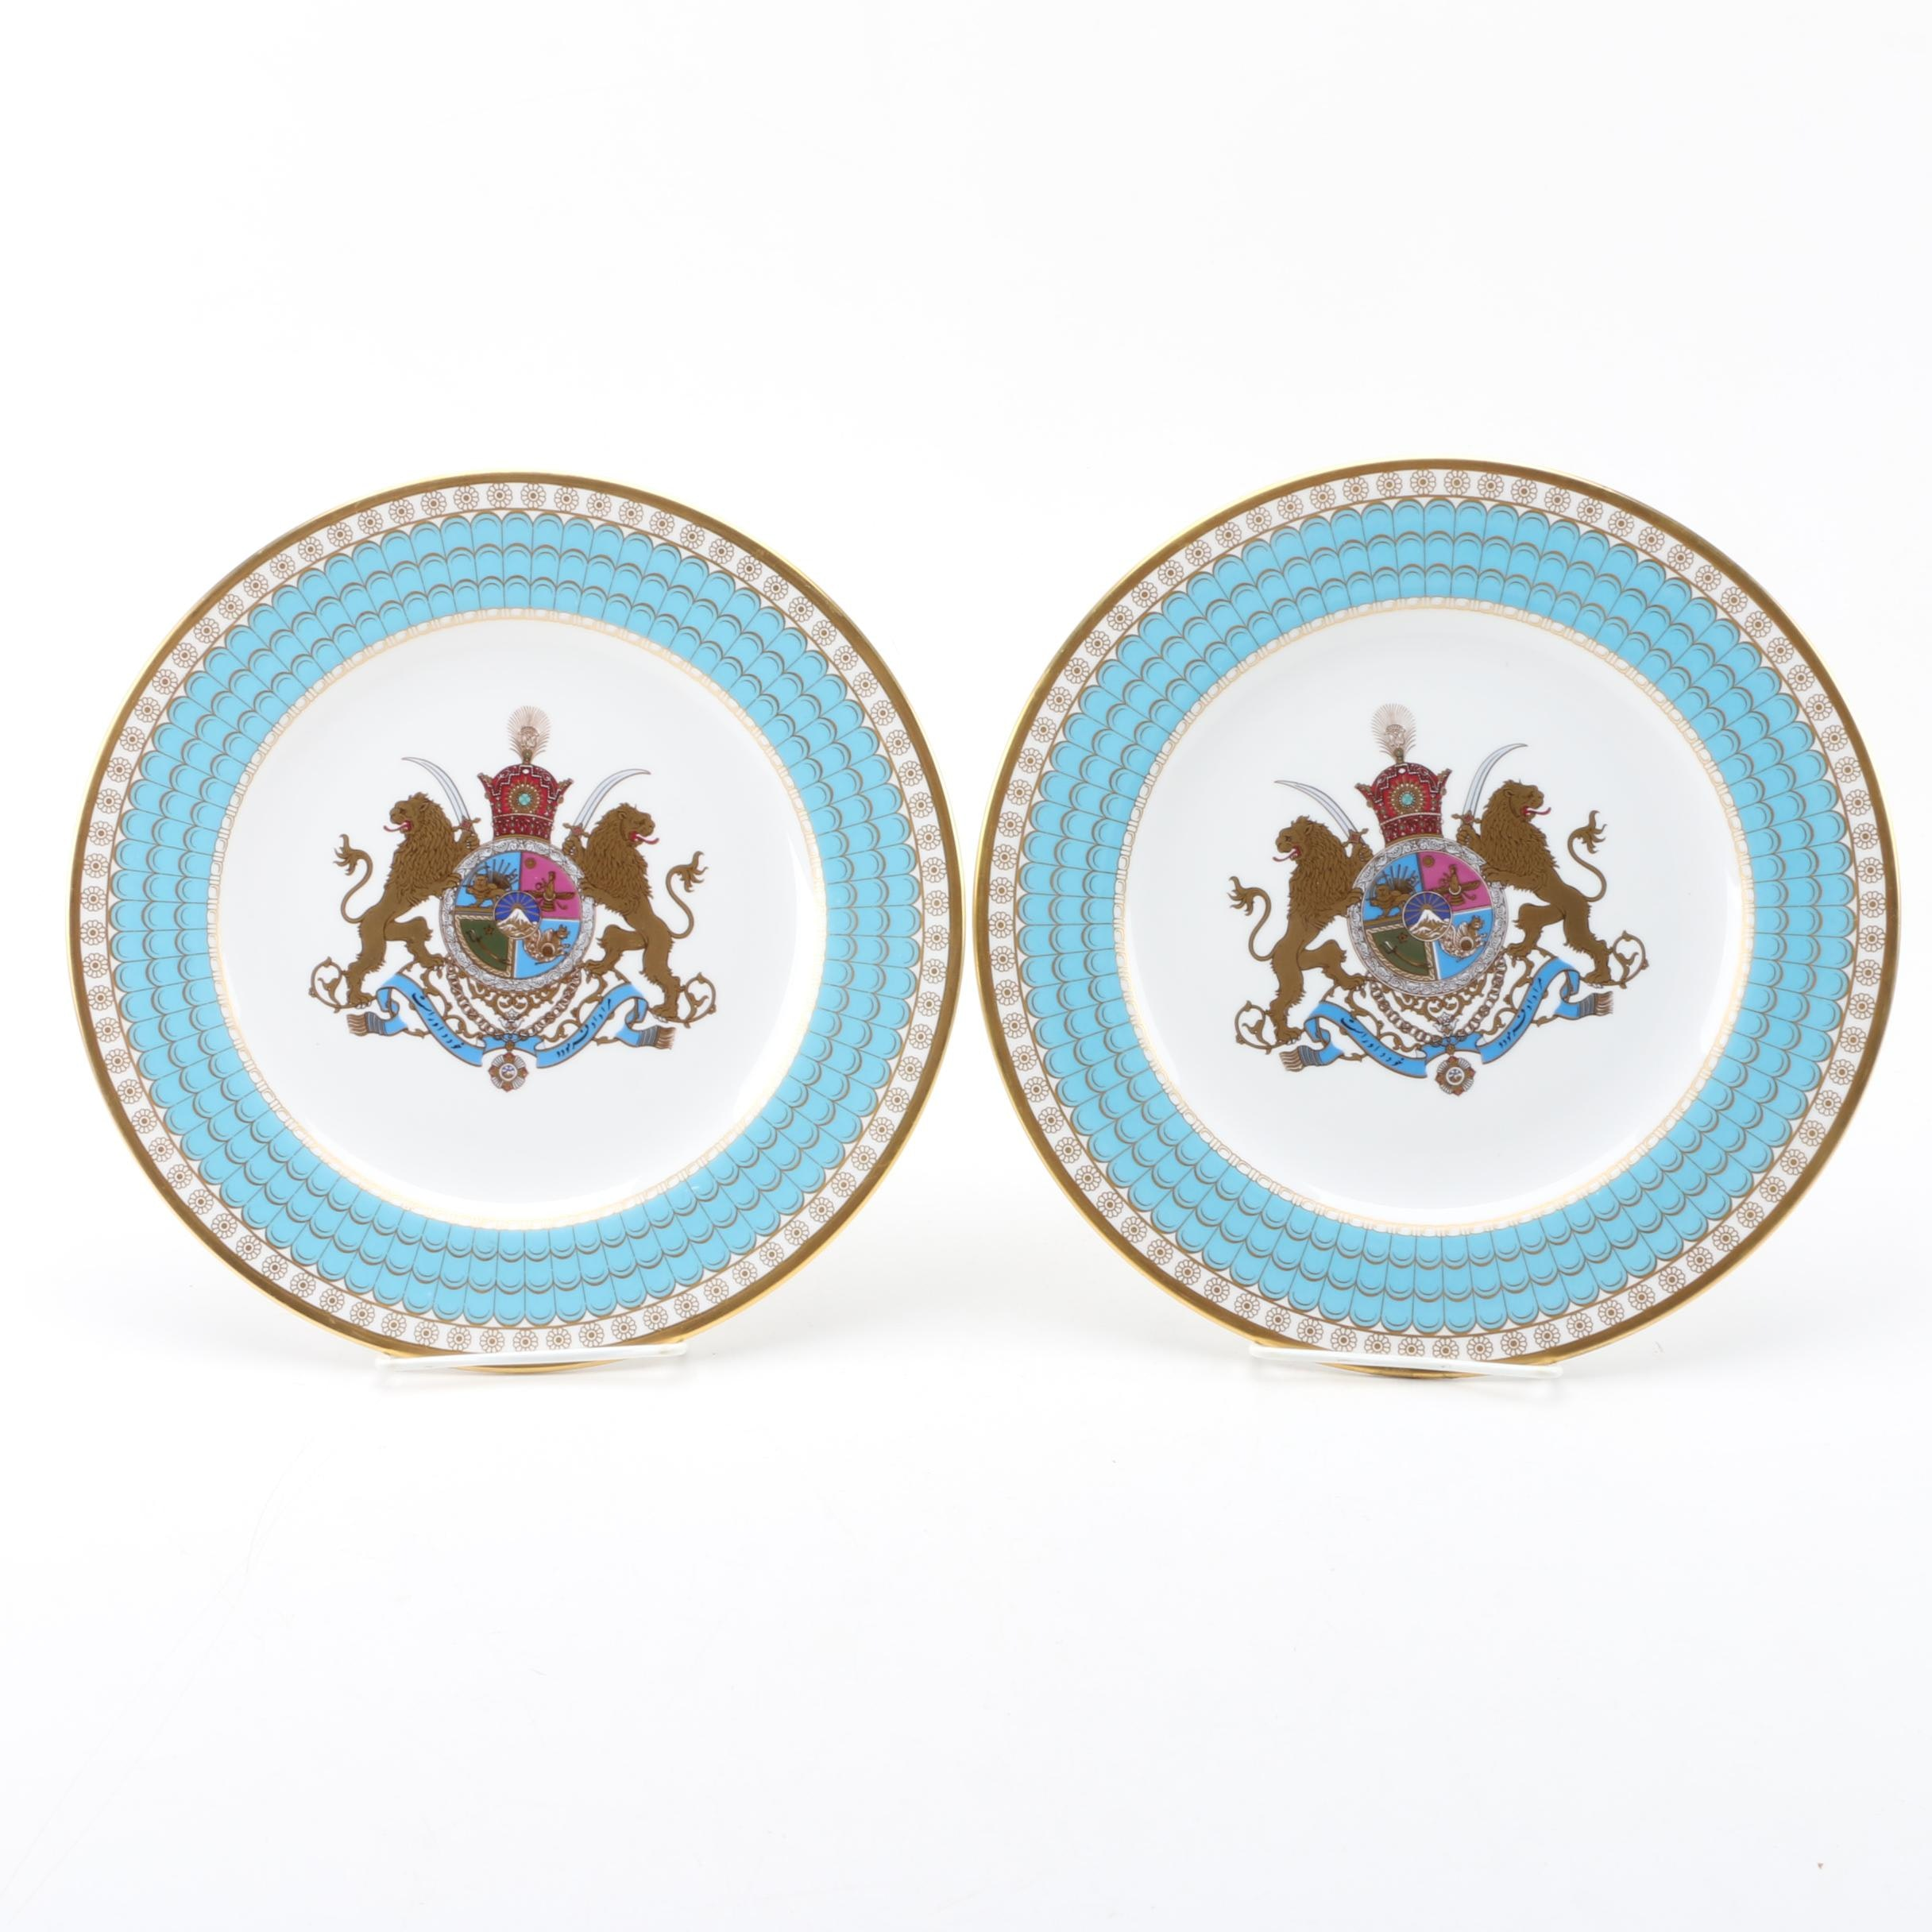 1971 Limited Edition Spode Commemorative Imperial Persian Plates